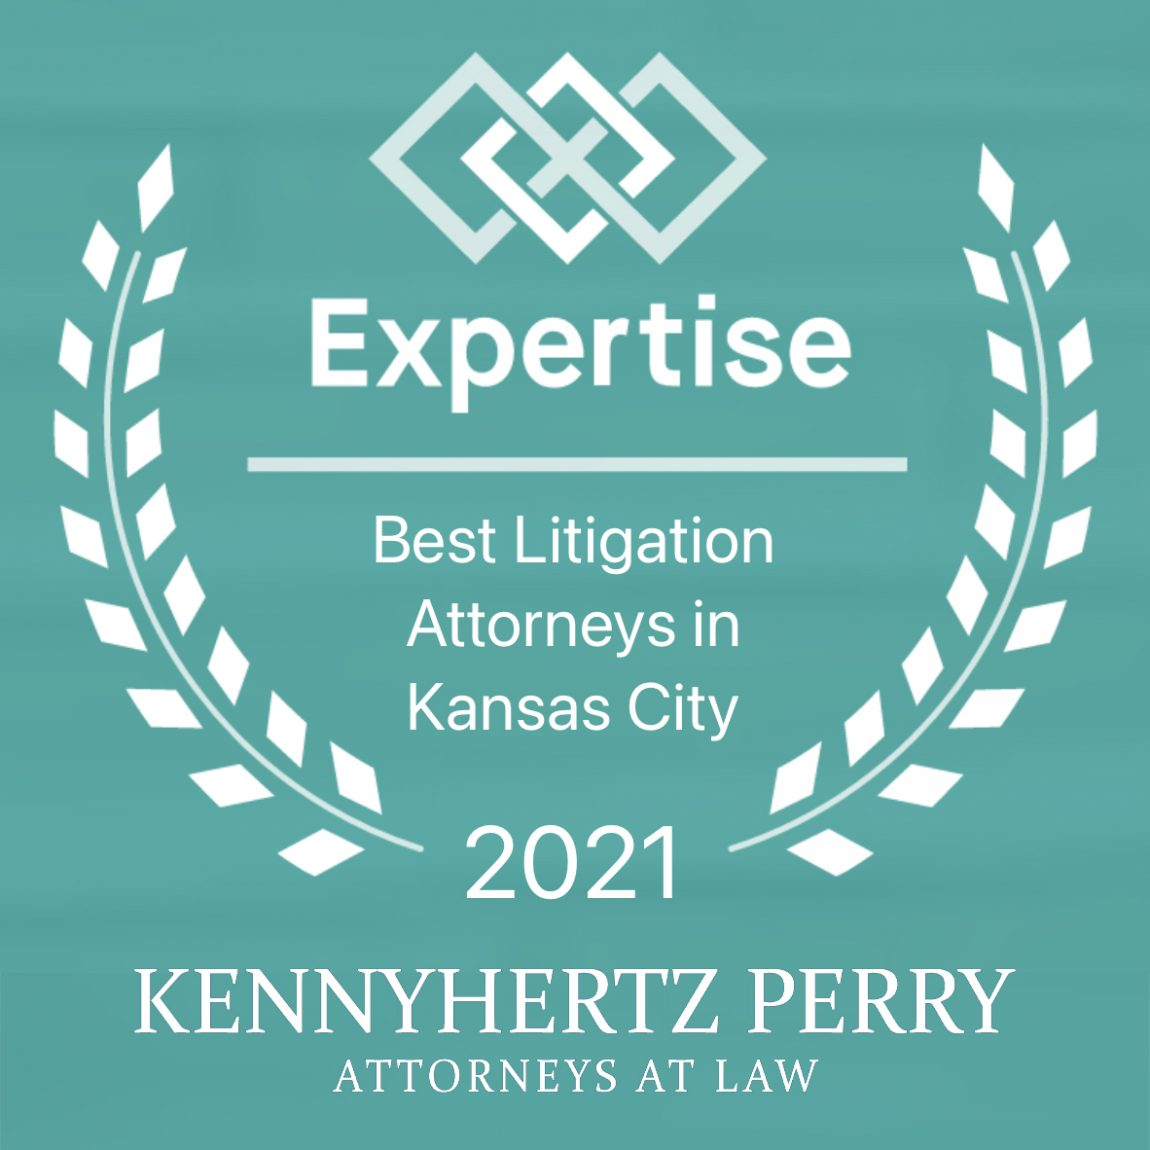 Kennyhertz Perry Awarded 2021 Best Litigation Attorneys in Kansas City